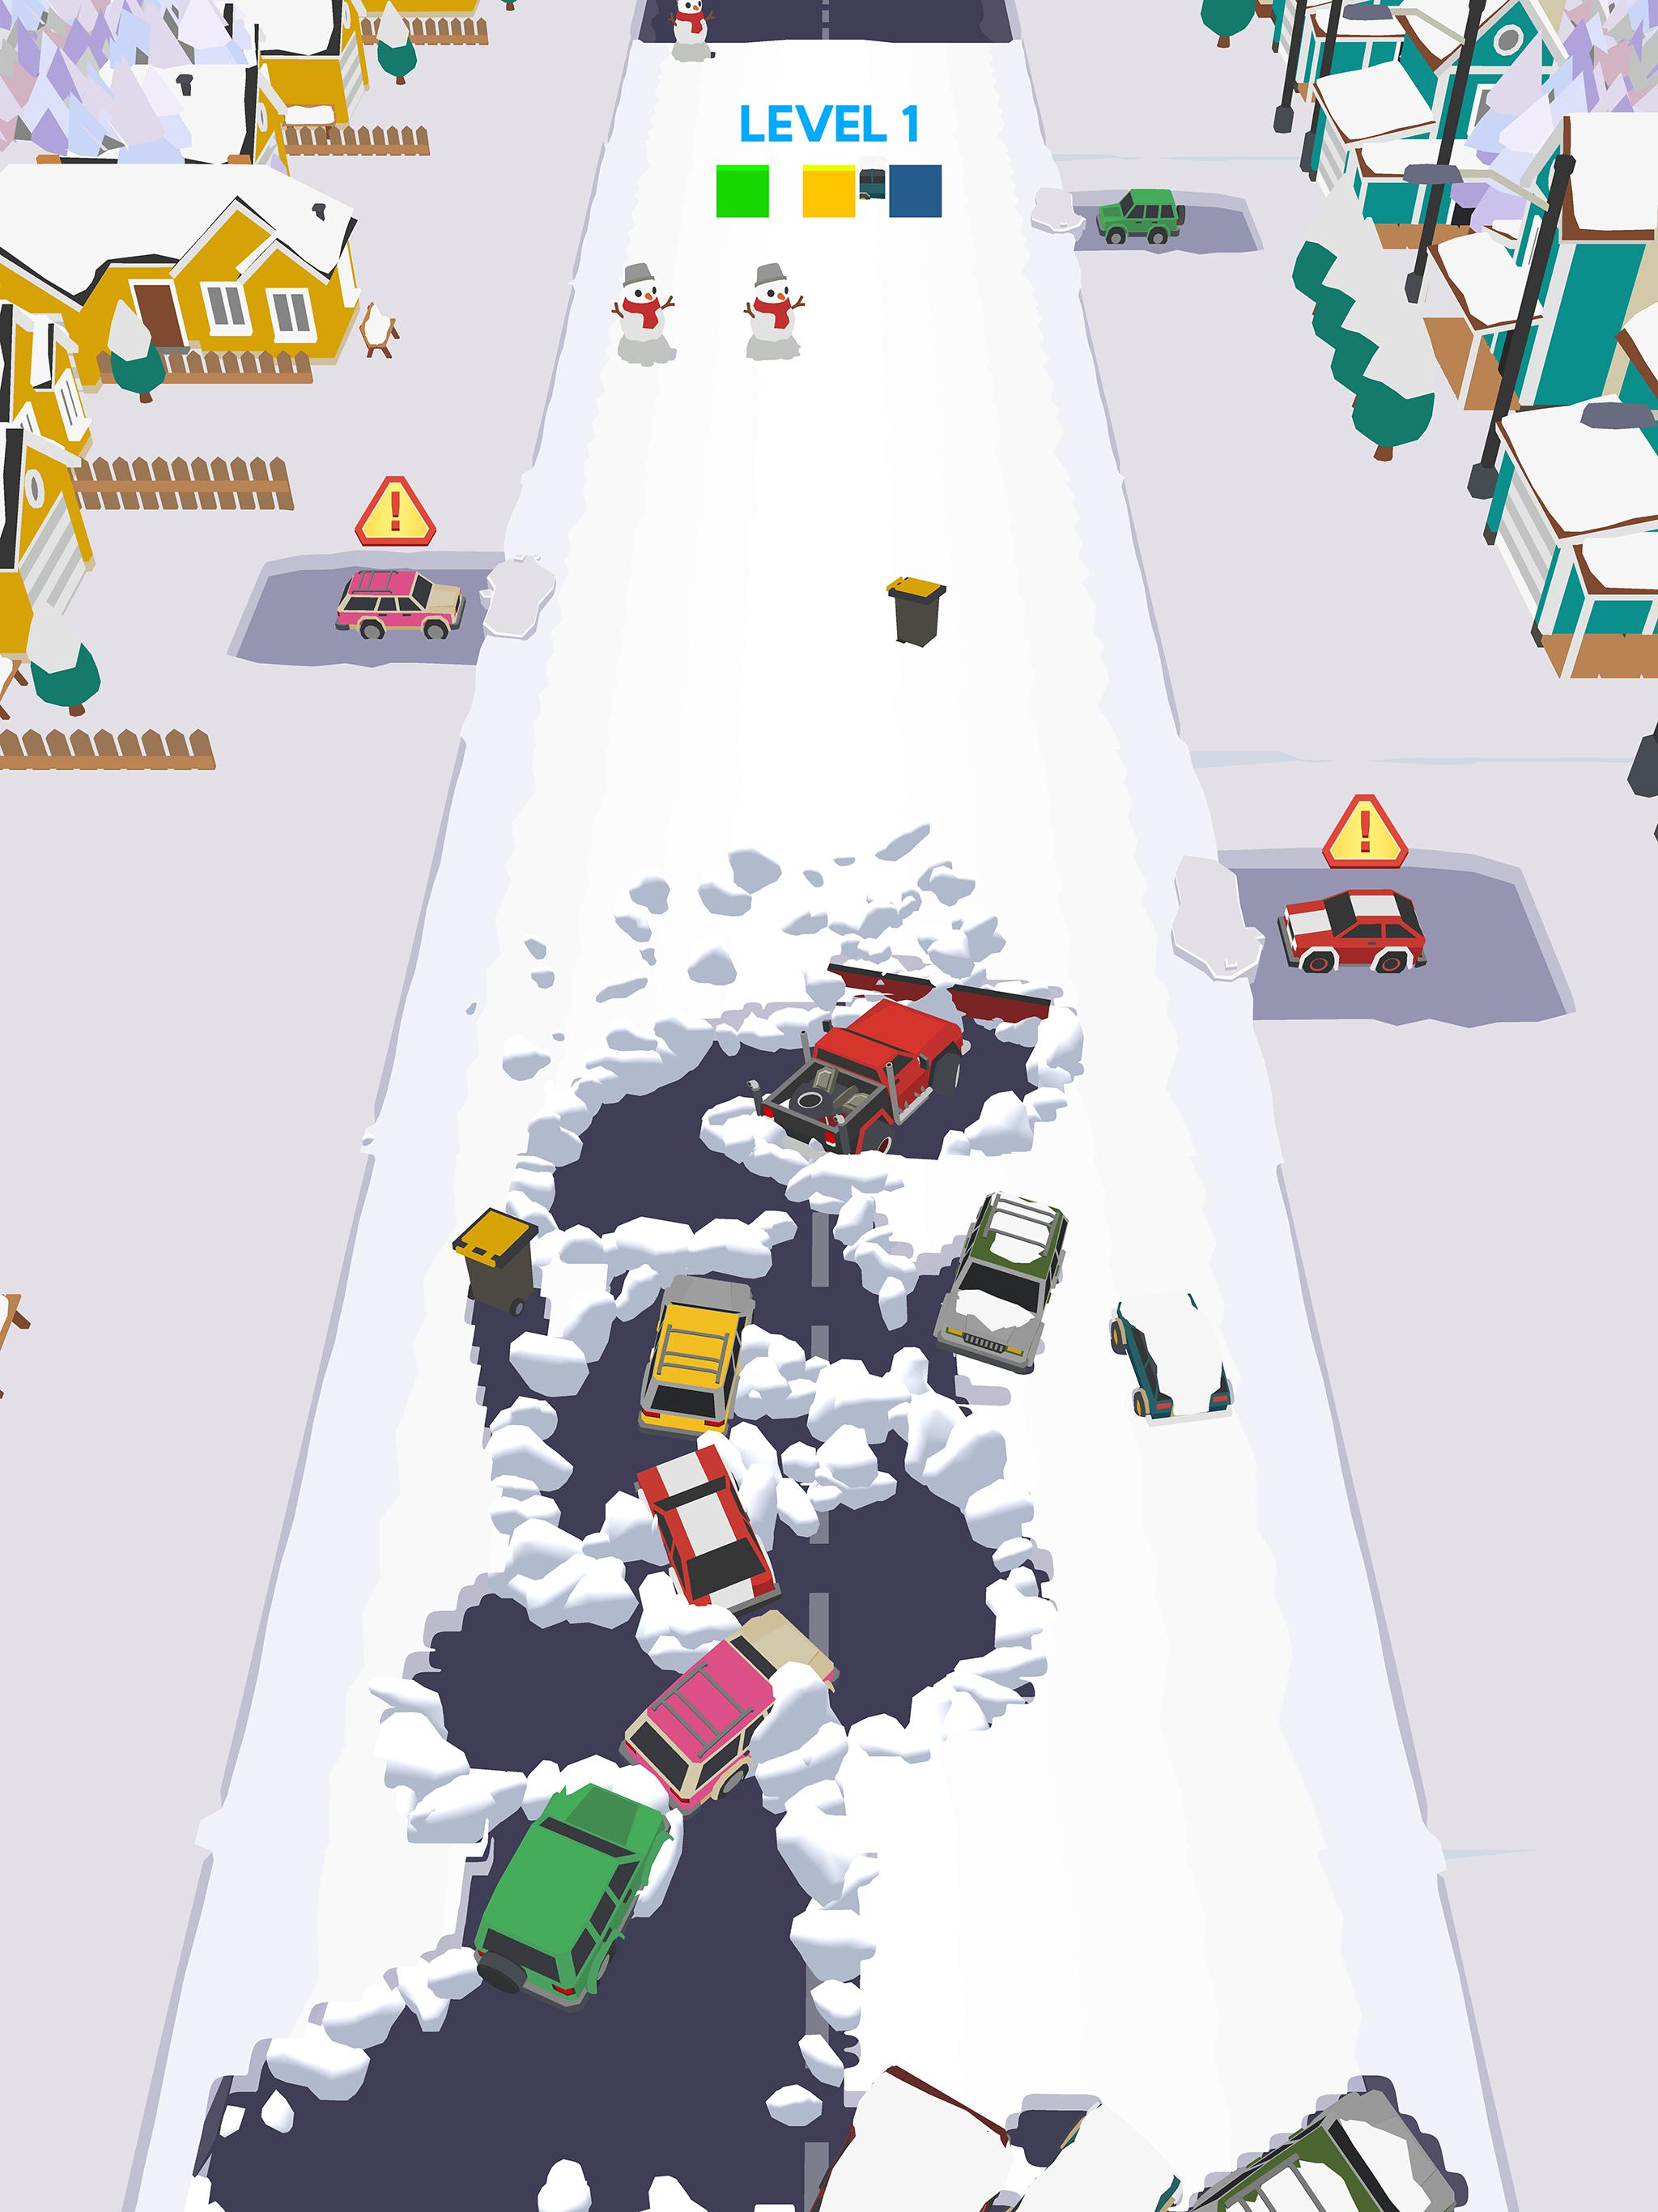 Donwload game pc Clean Road